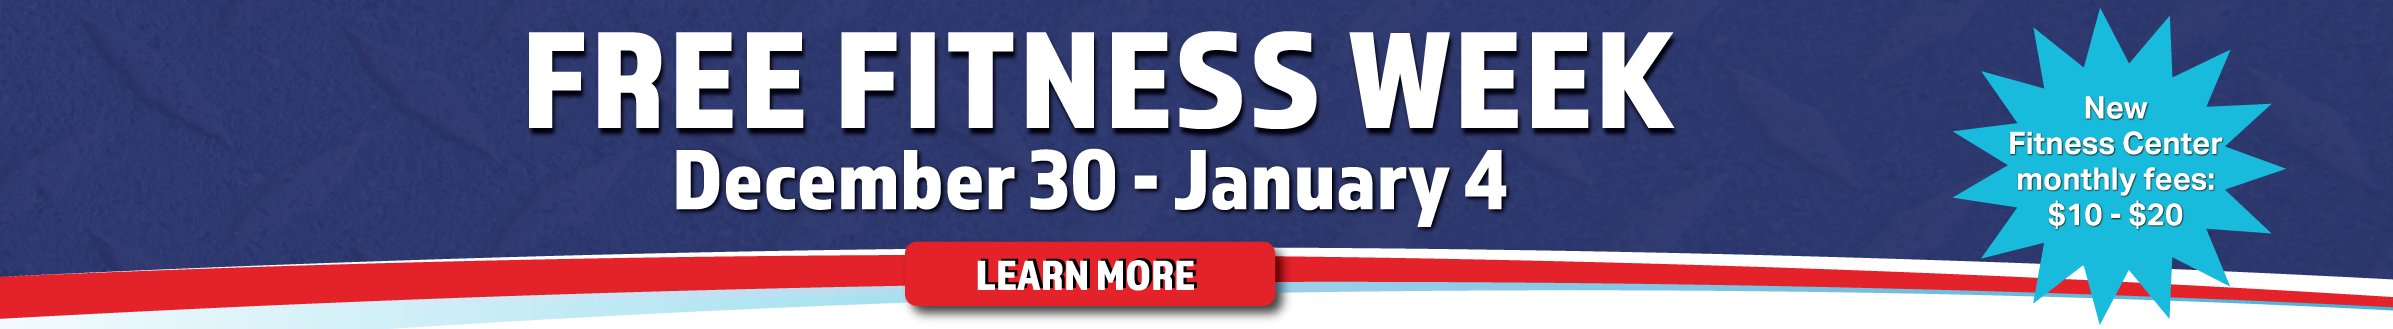 Free Fitness Week.  Work out for free, December 30 - January 4.